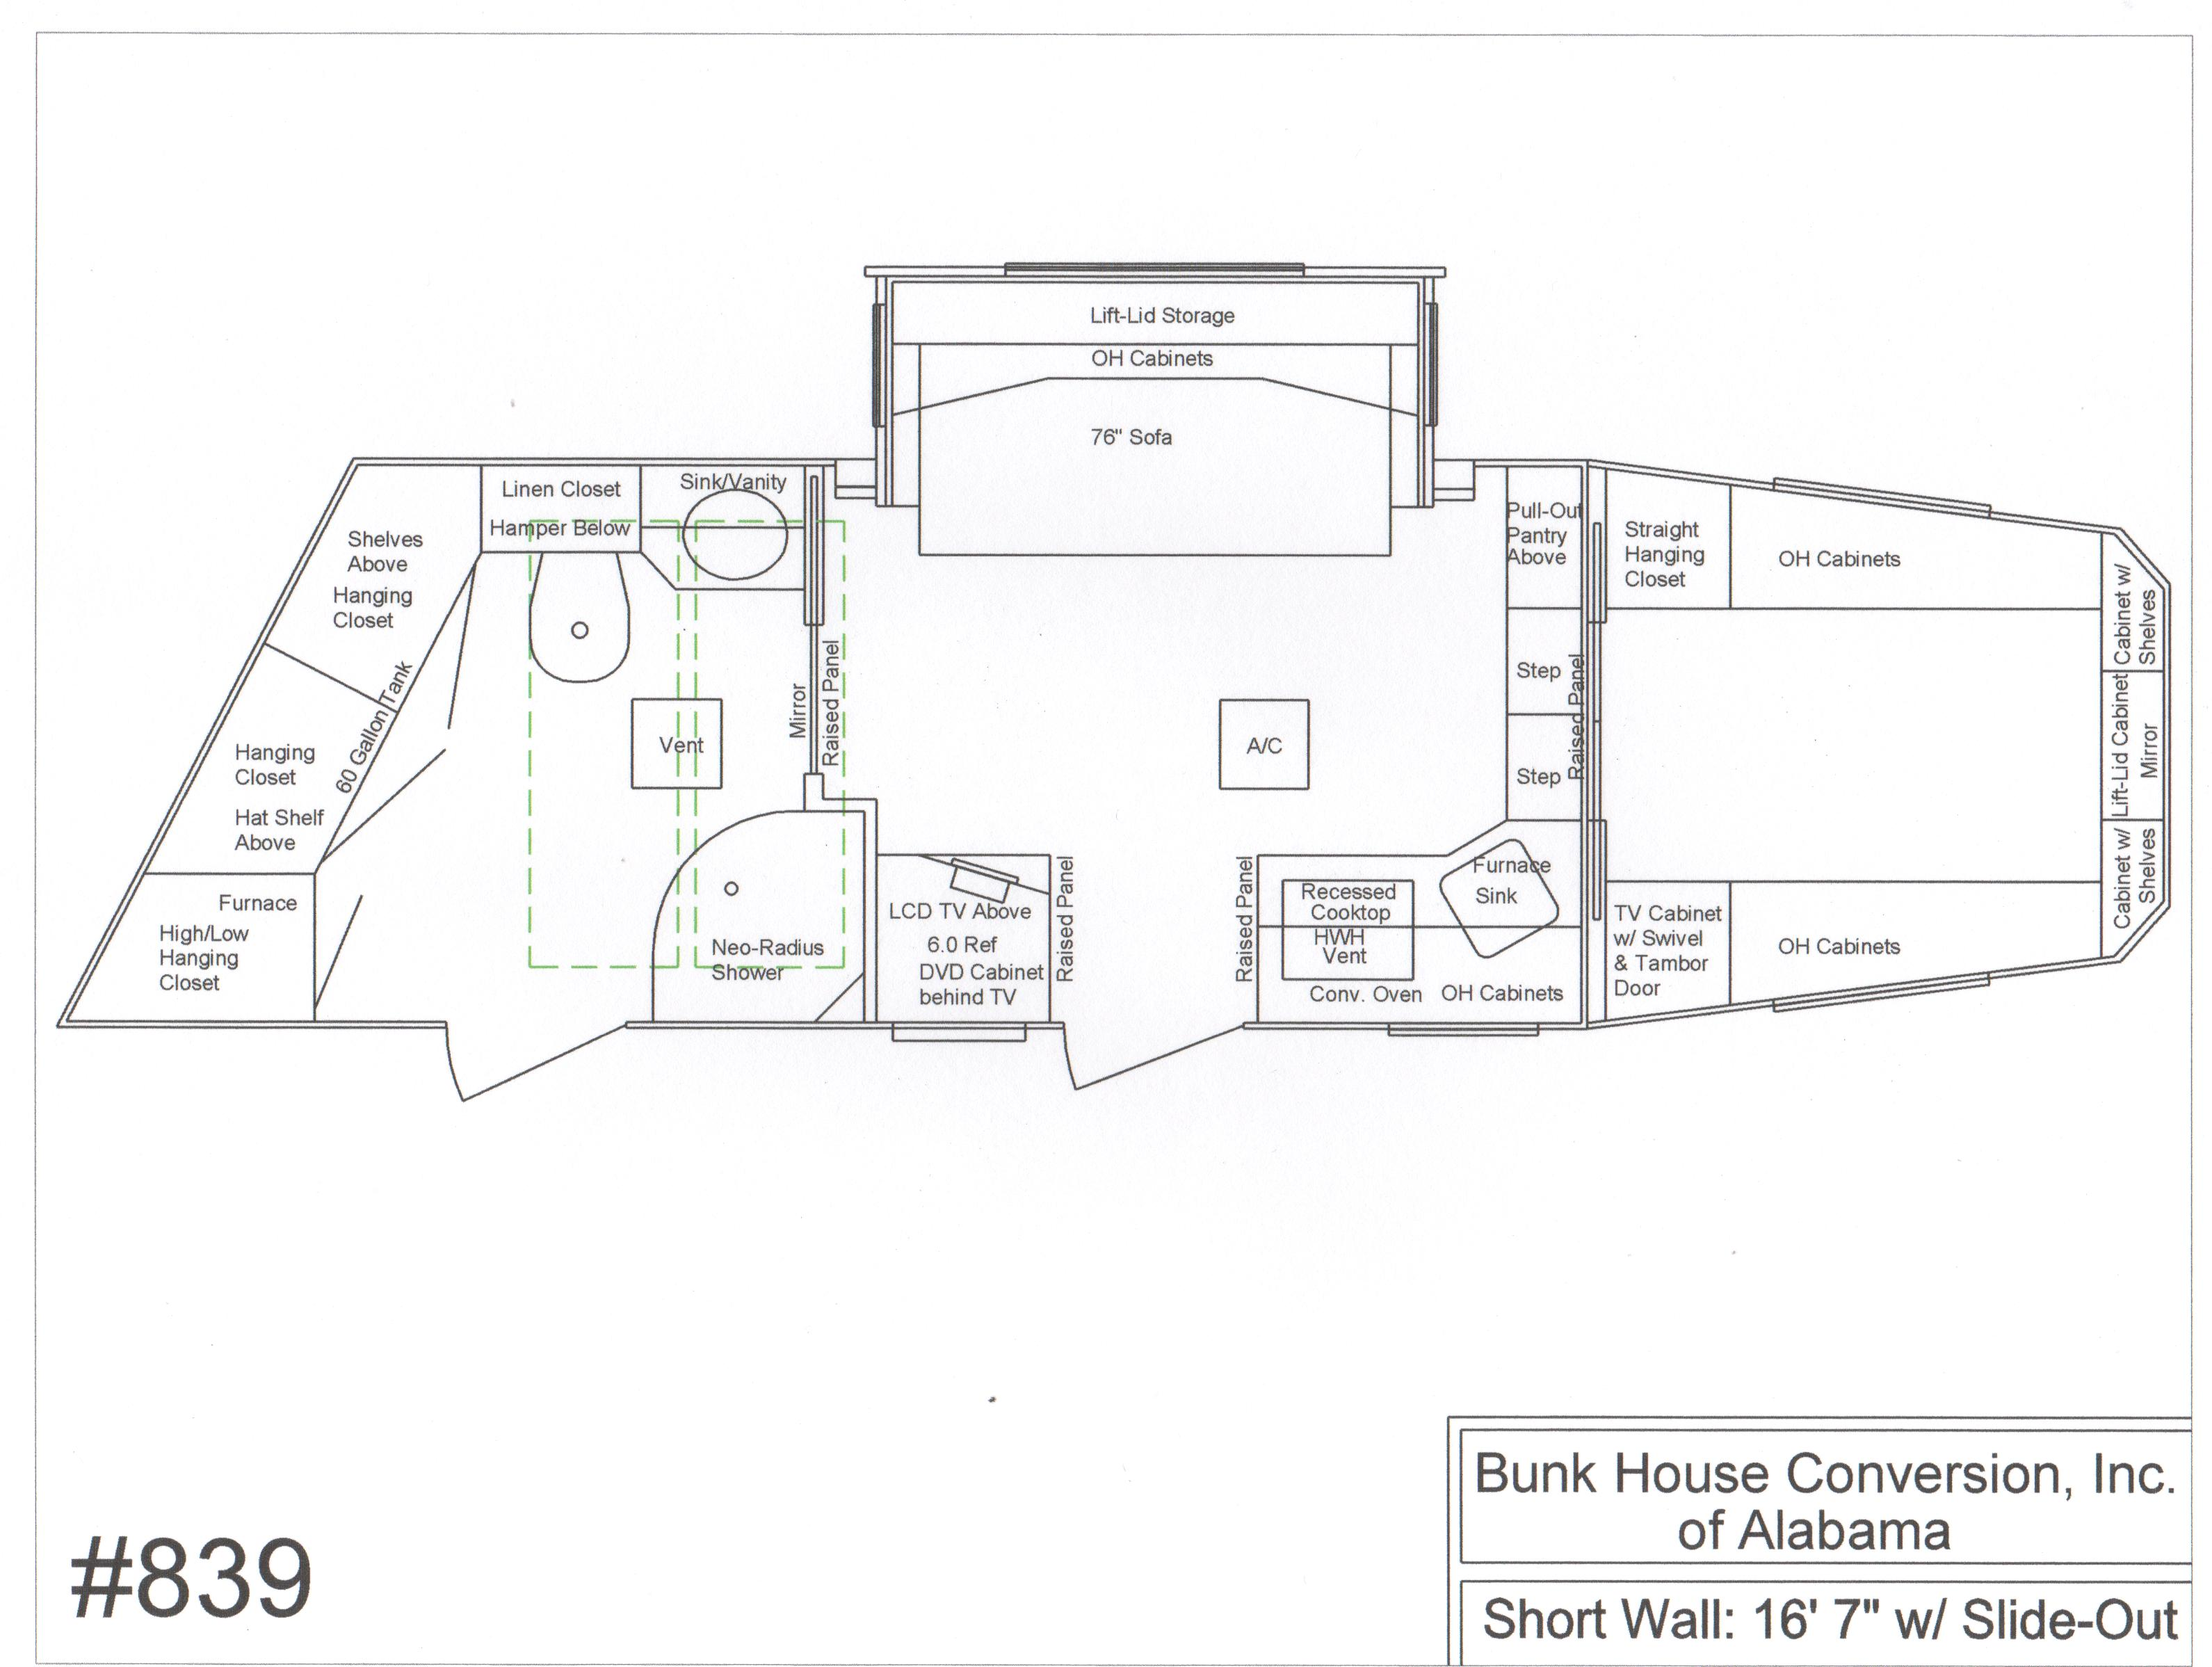 Congress floorplans by bunkhouse conversion of alabama Bunkhouse floor plans